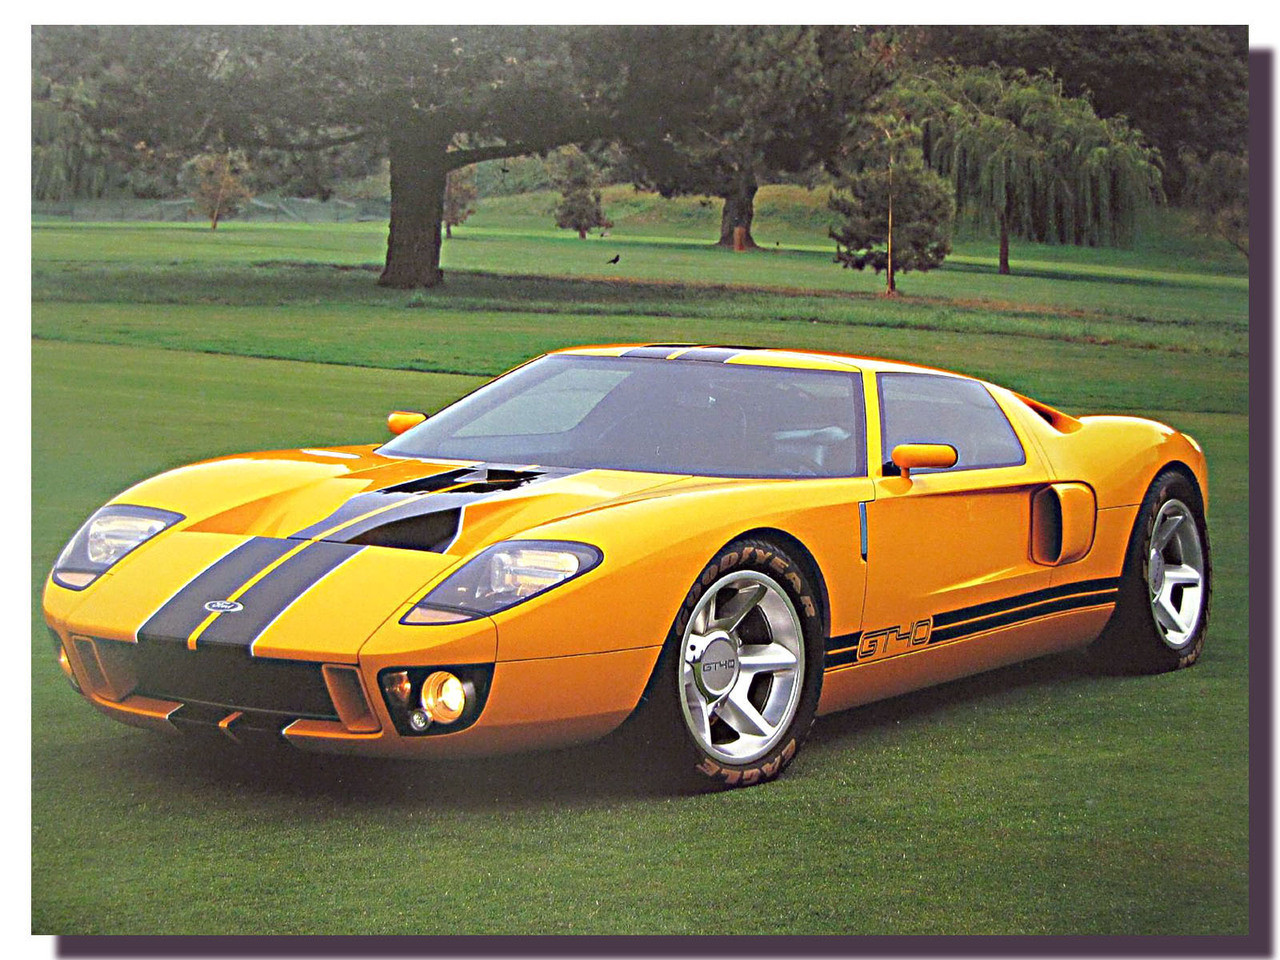 Ford Gt Prototype Car Poster Car Posters Automotive Posters